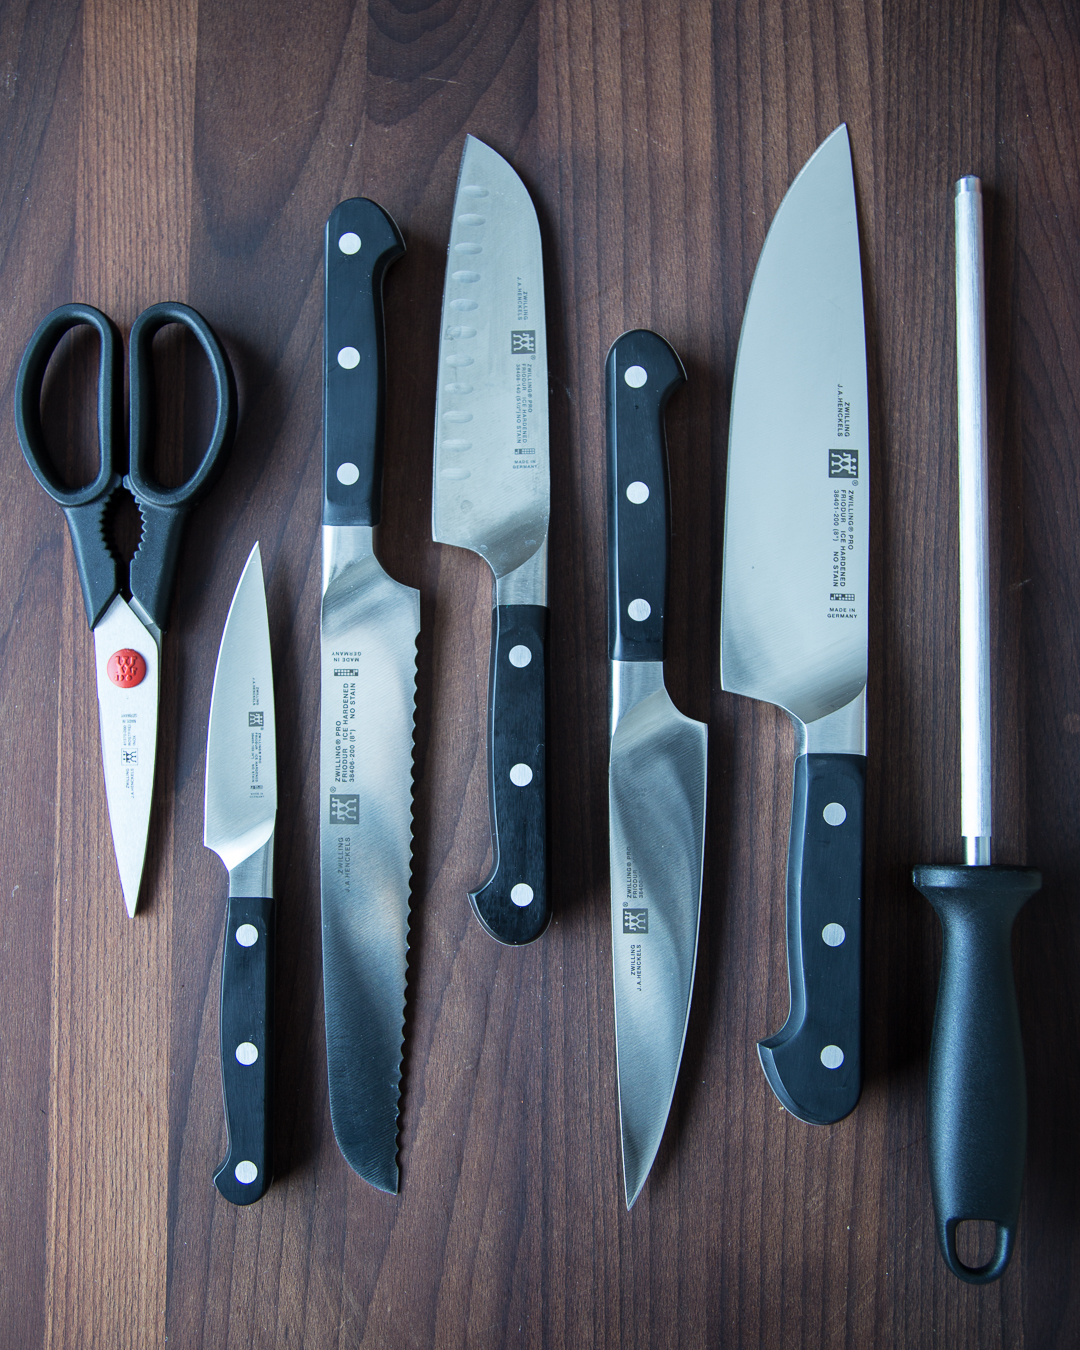 Zwilling. Latest Is Required To Add Item To Cart Or Registry With ...